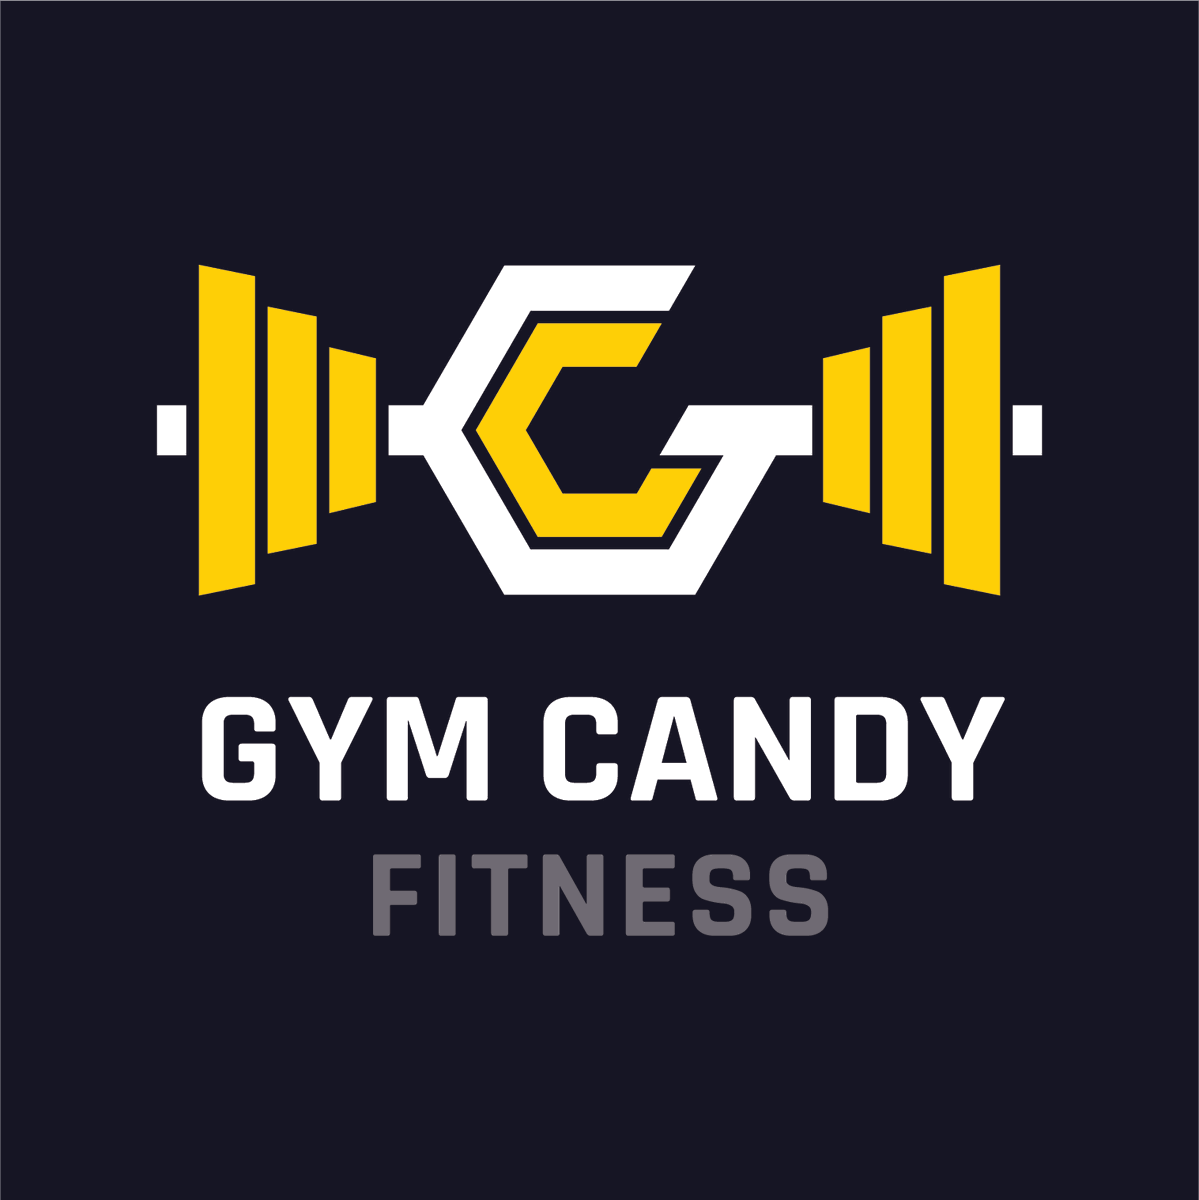 #5days until you can see your new favorite outfit  . . #gymcandy #fitness #fit #fitspo #nutrition #fitfam #motivation #strength #goals #gains #fitwomen #fitnessmodel #food #cincinnati #workout #girlswhosquat #gympic.twitter.com/2gRP2I08ml